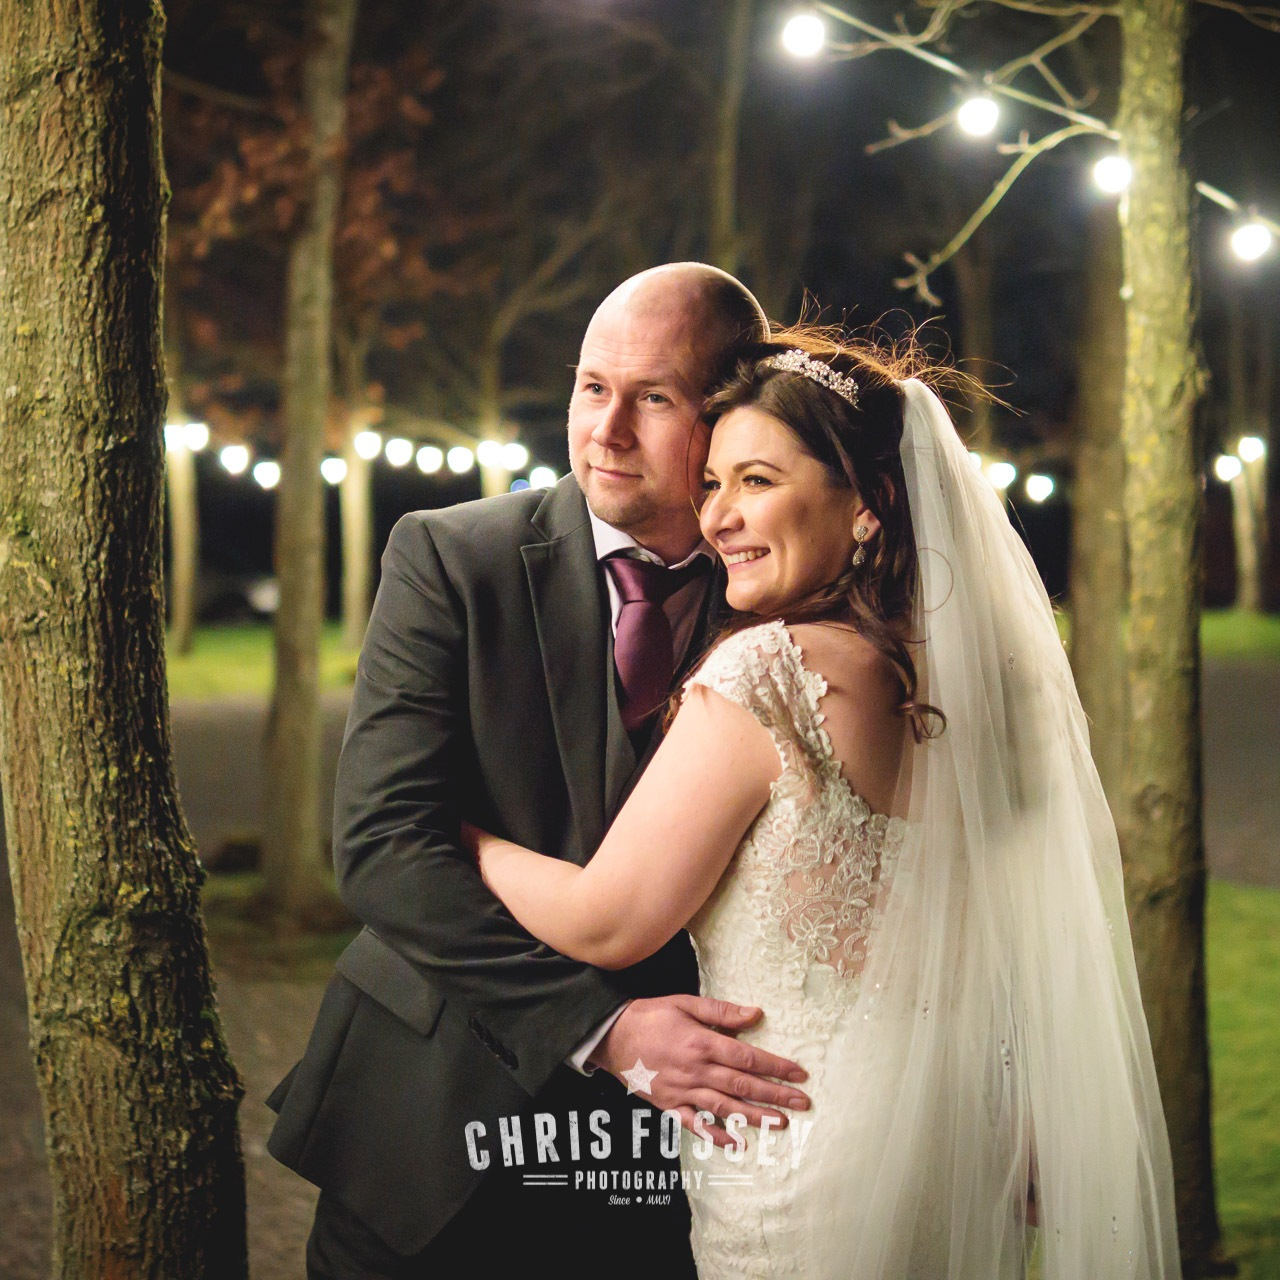 Warwickshire Wedding Photography Portfolio-Shustoke Barns Wedding Photography by Chris Fossey-179